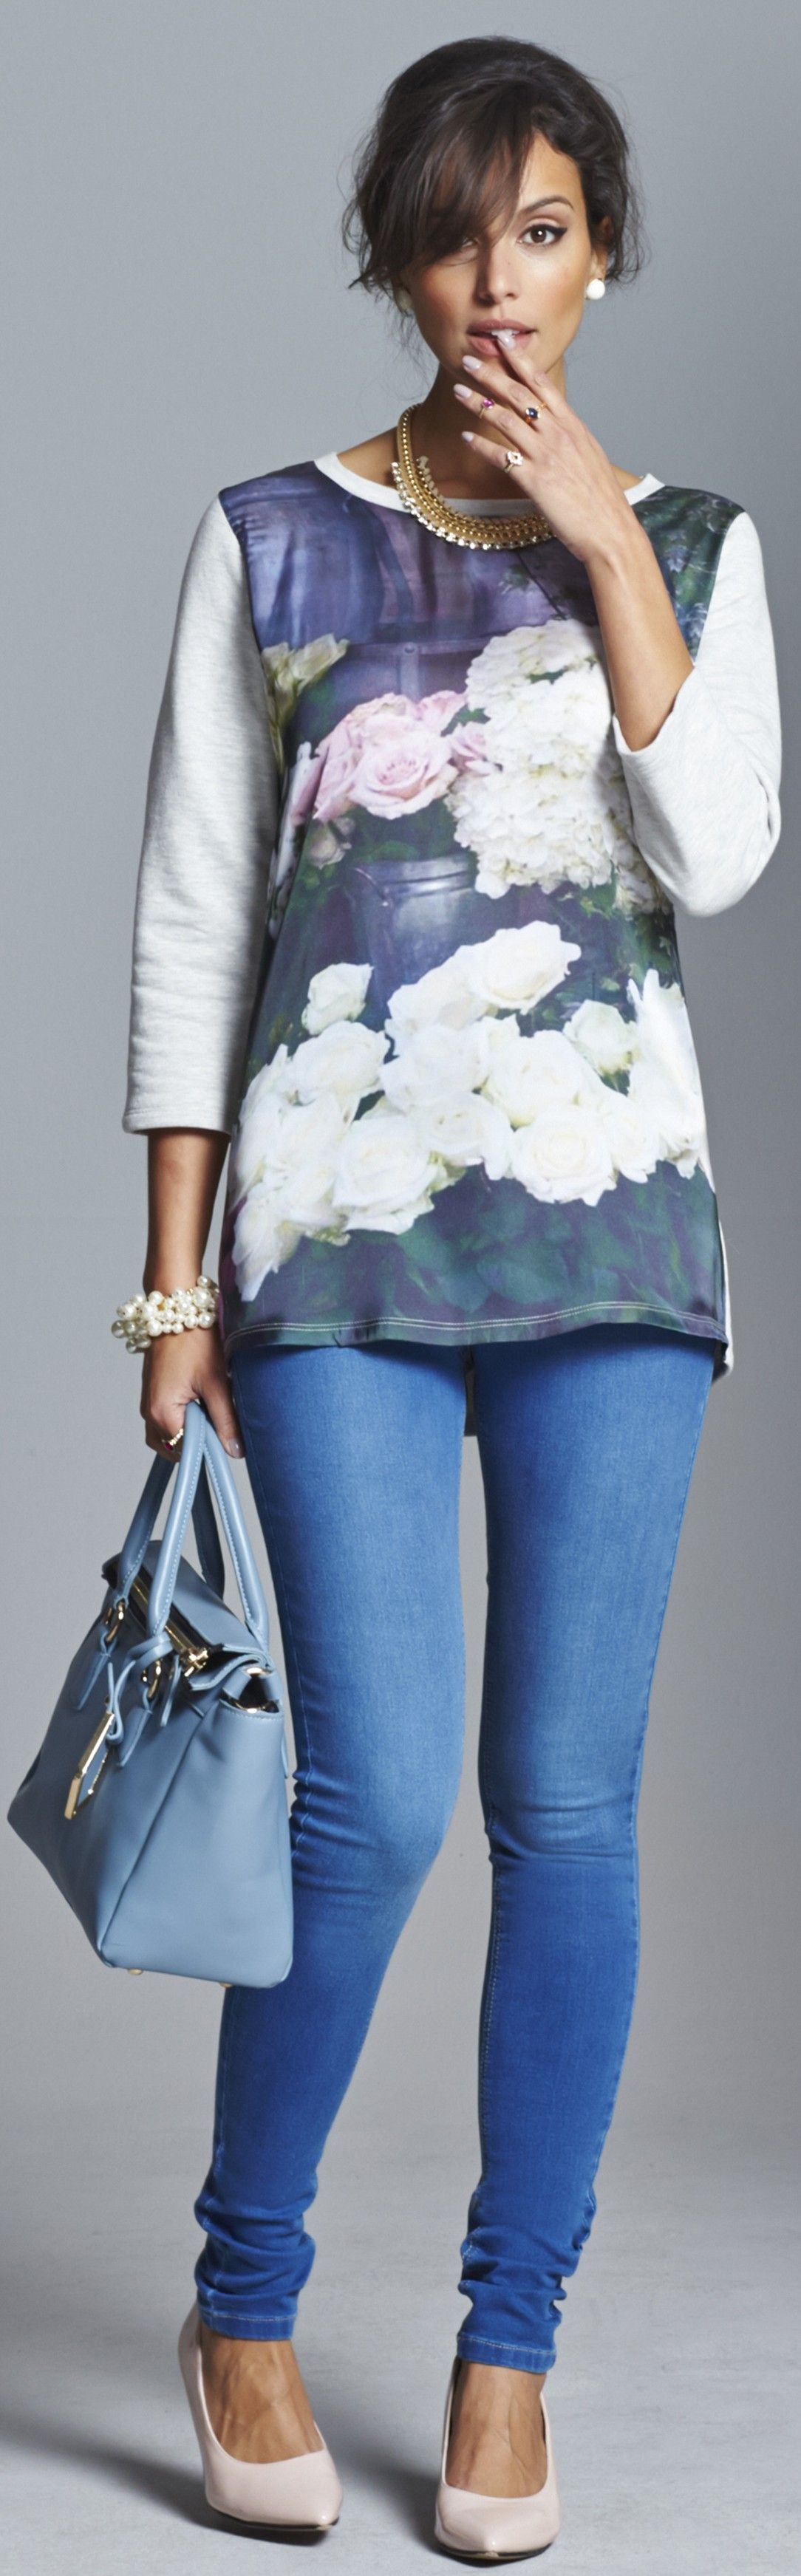 Casual jeans and sweatshirt outfit for fall 2014 covers a ...